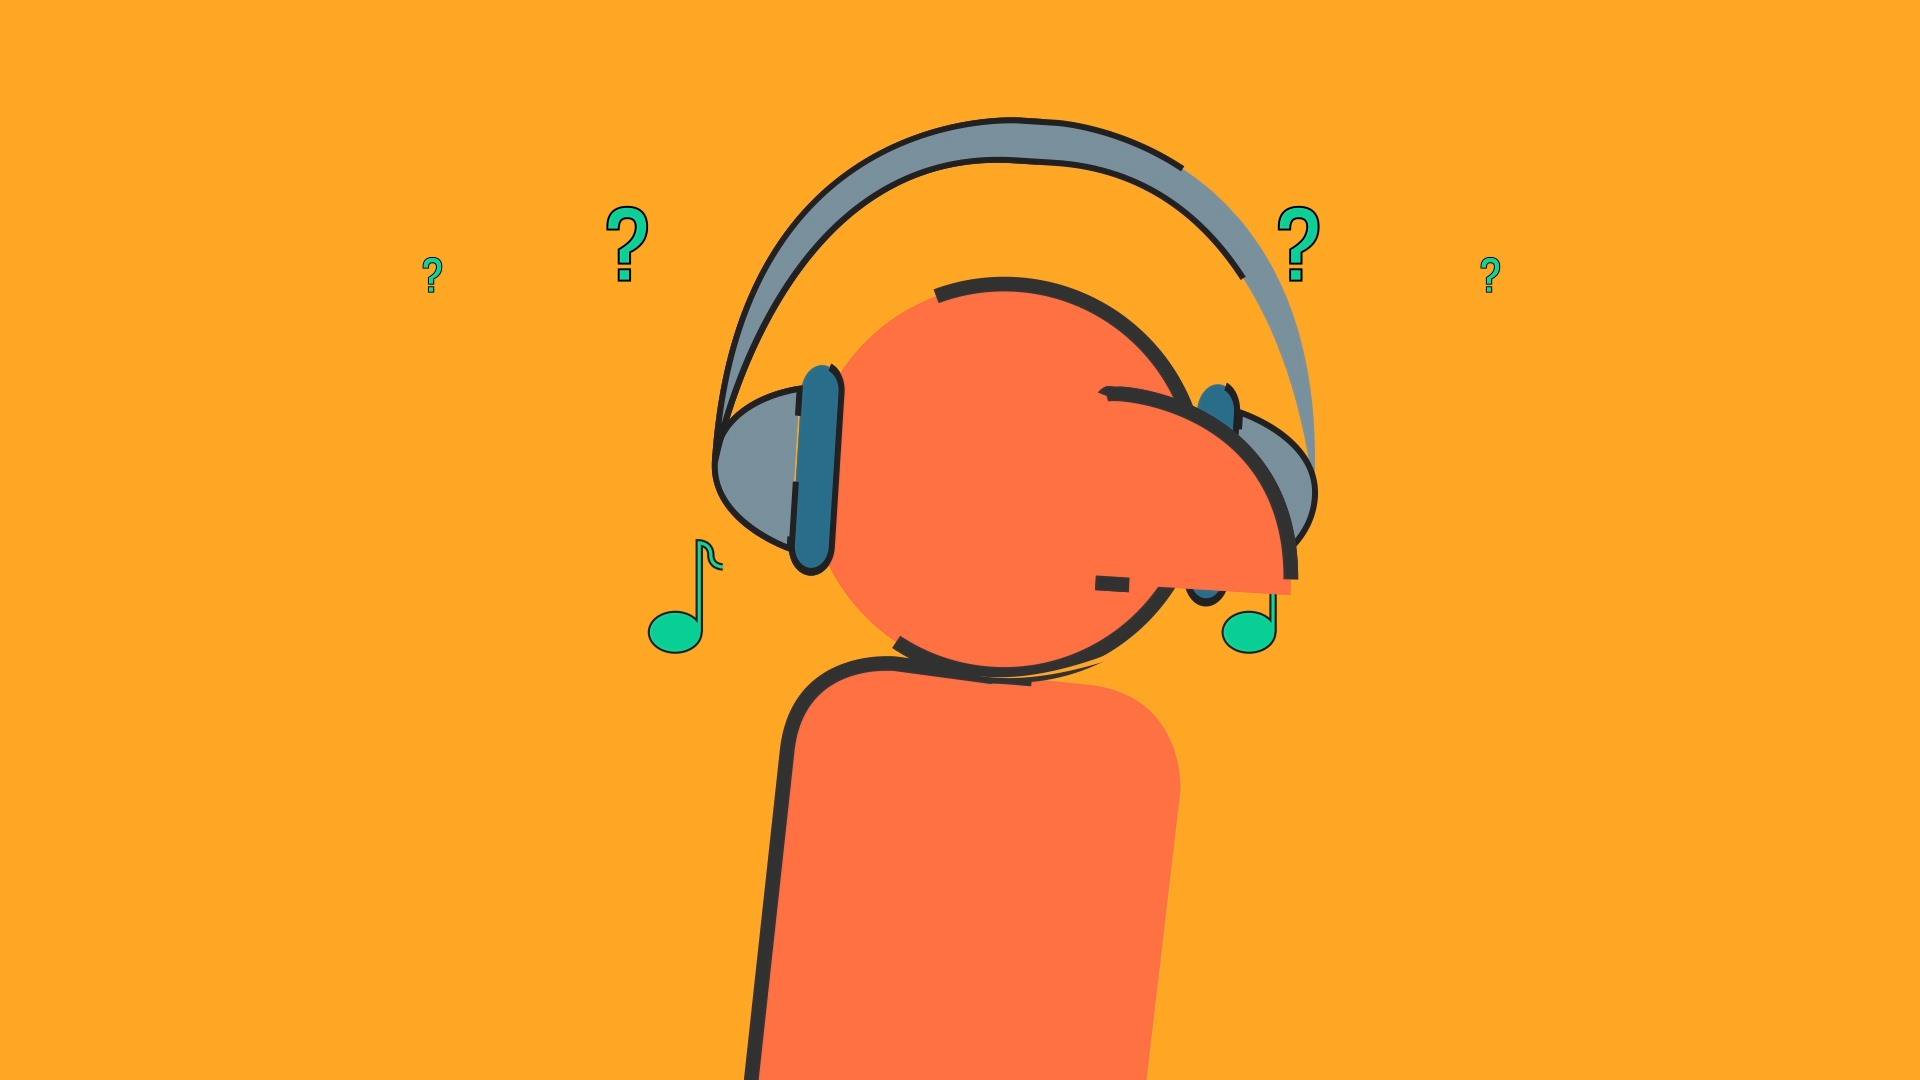 Your new favorite song may have been chosen by an algorithm https://t.co/igZxLC1Pua via @NBCNewsMACH https://t.co/AQgr7ht4dM